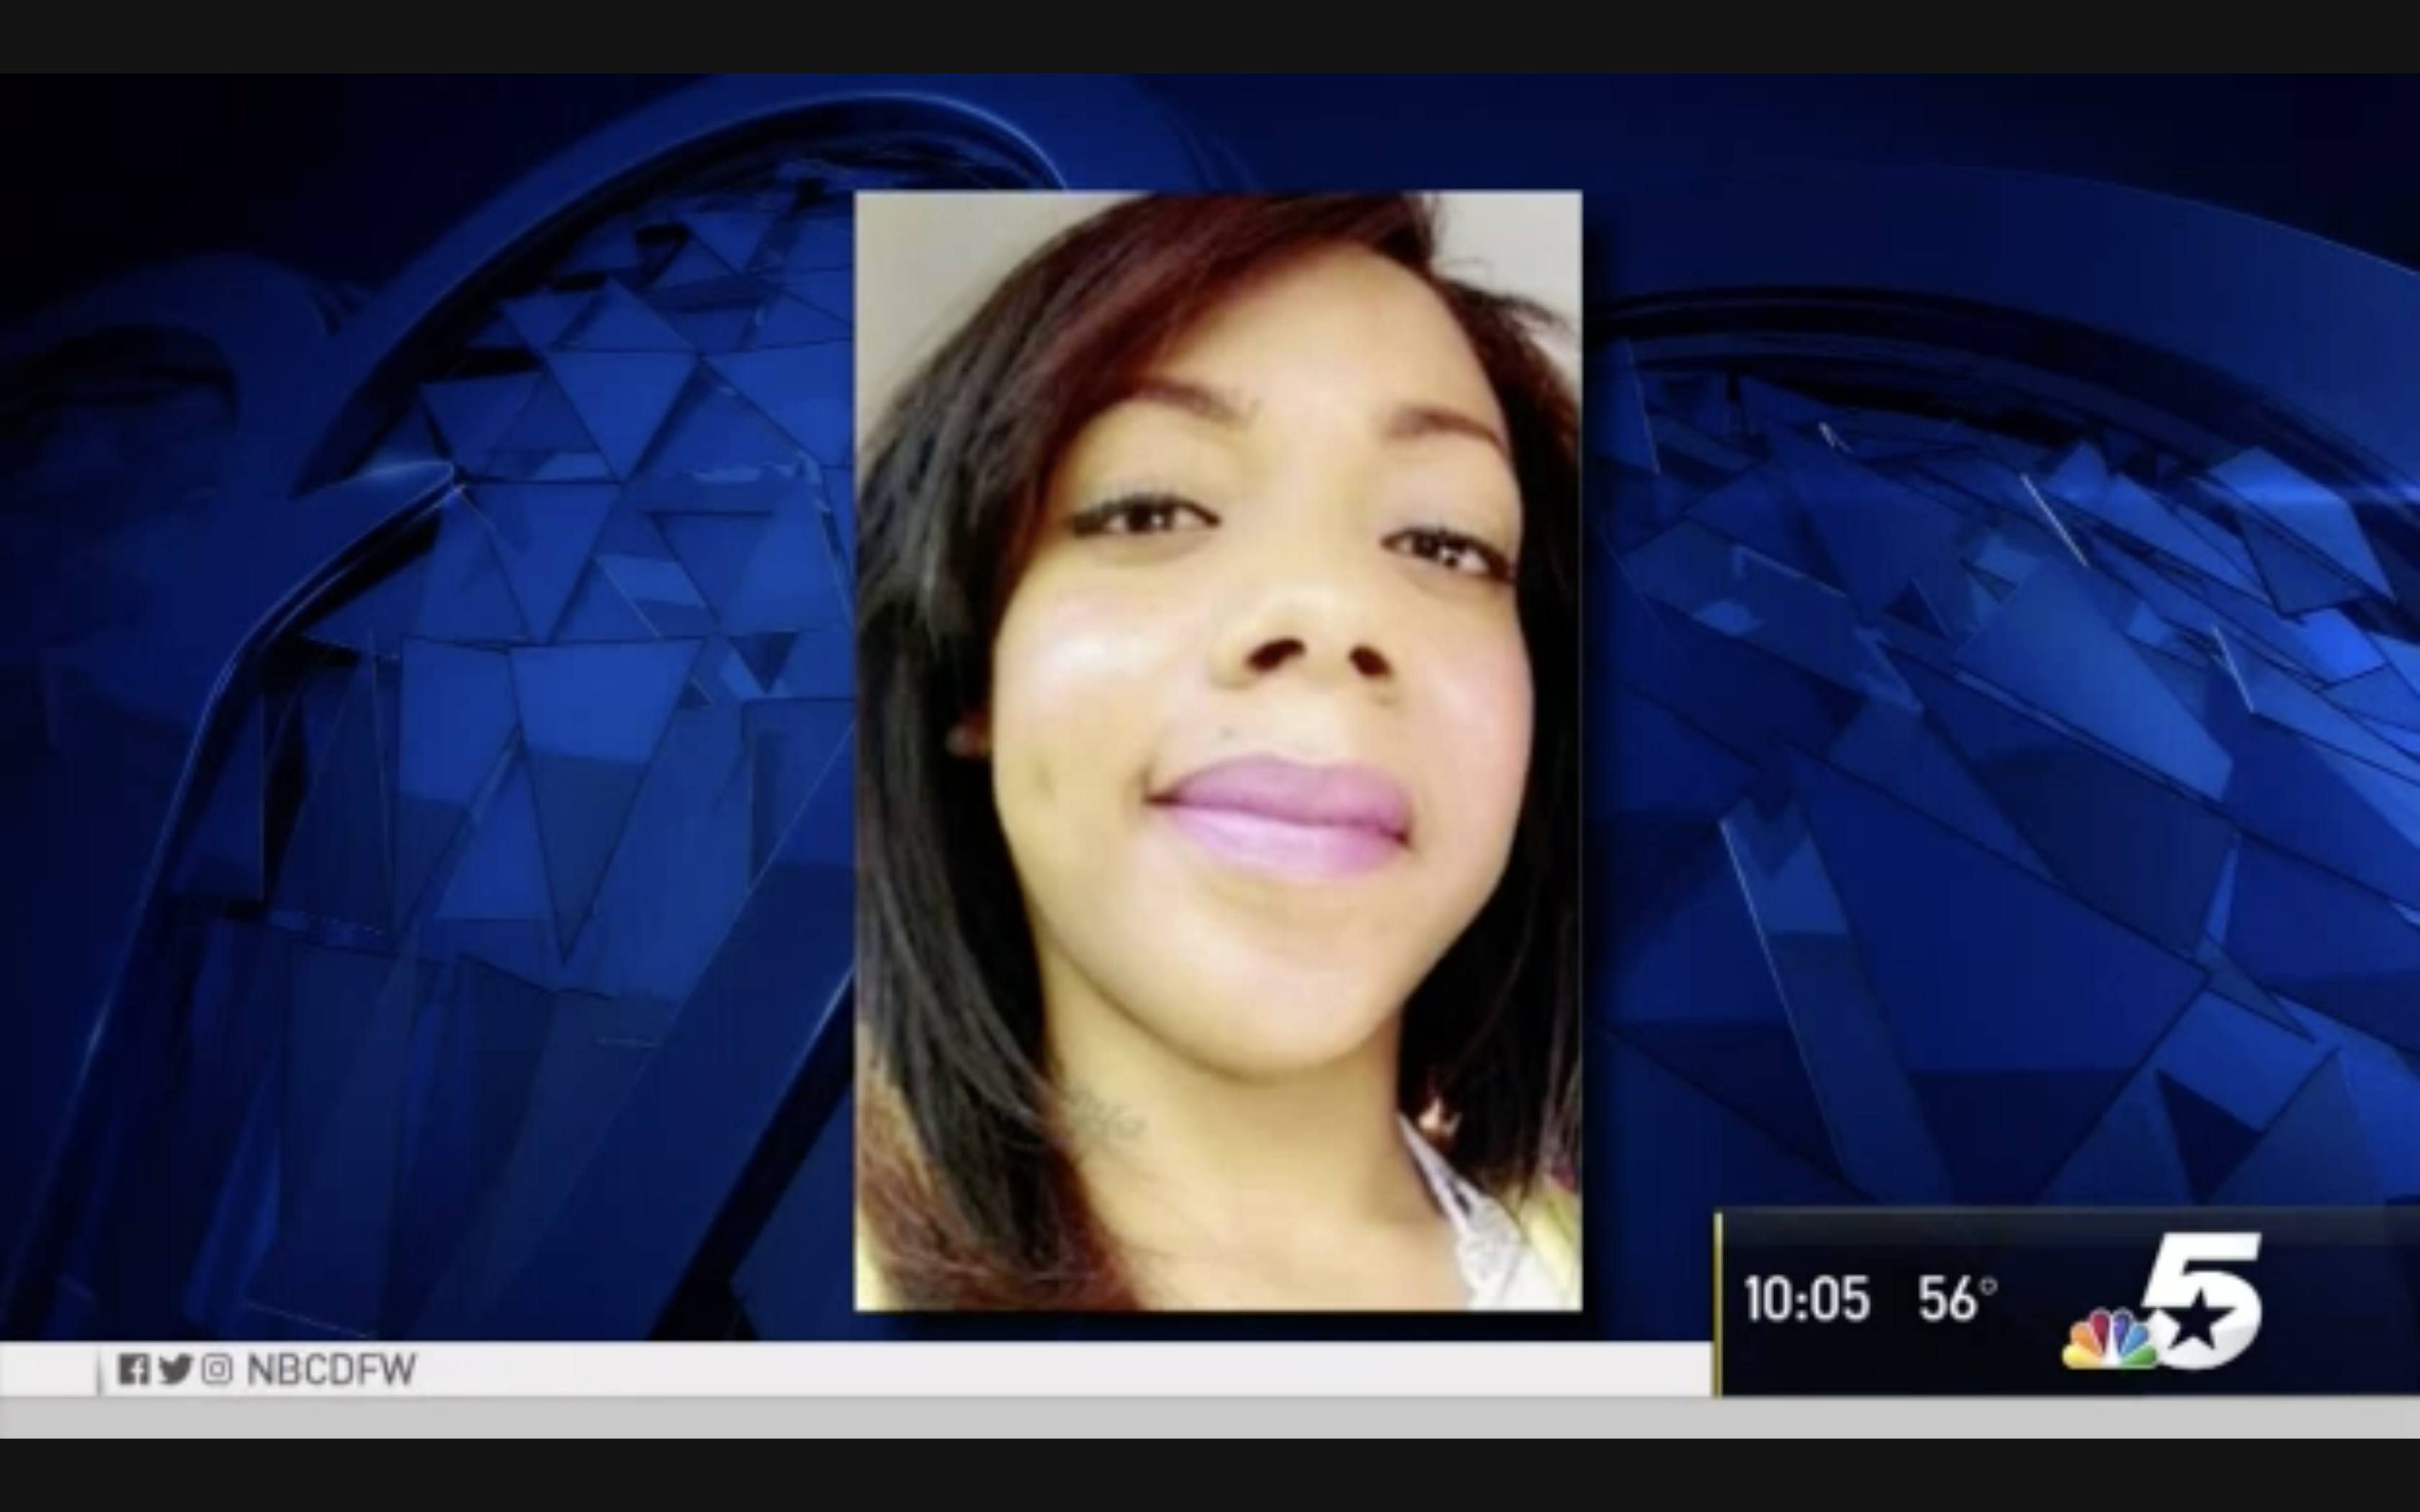 News footage of missing woman